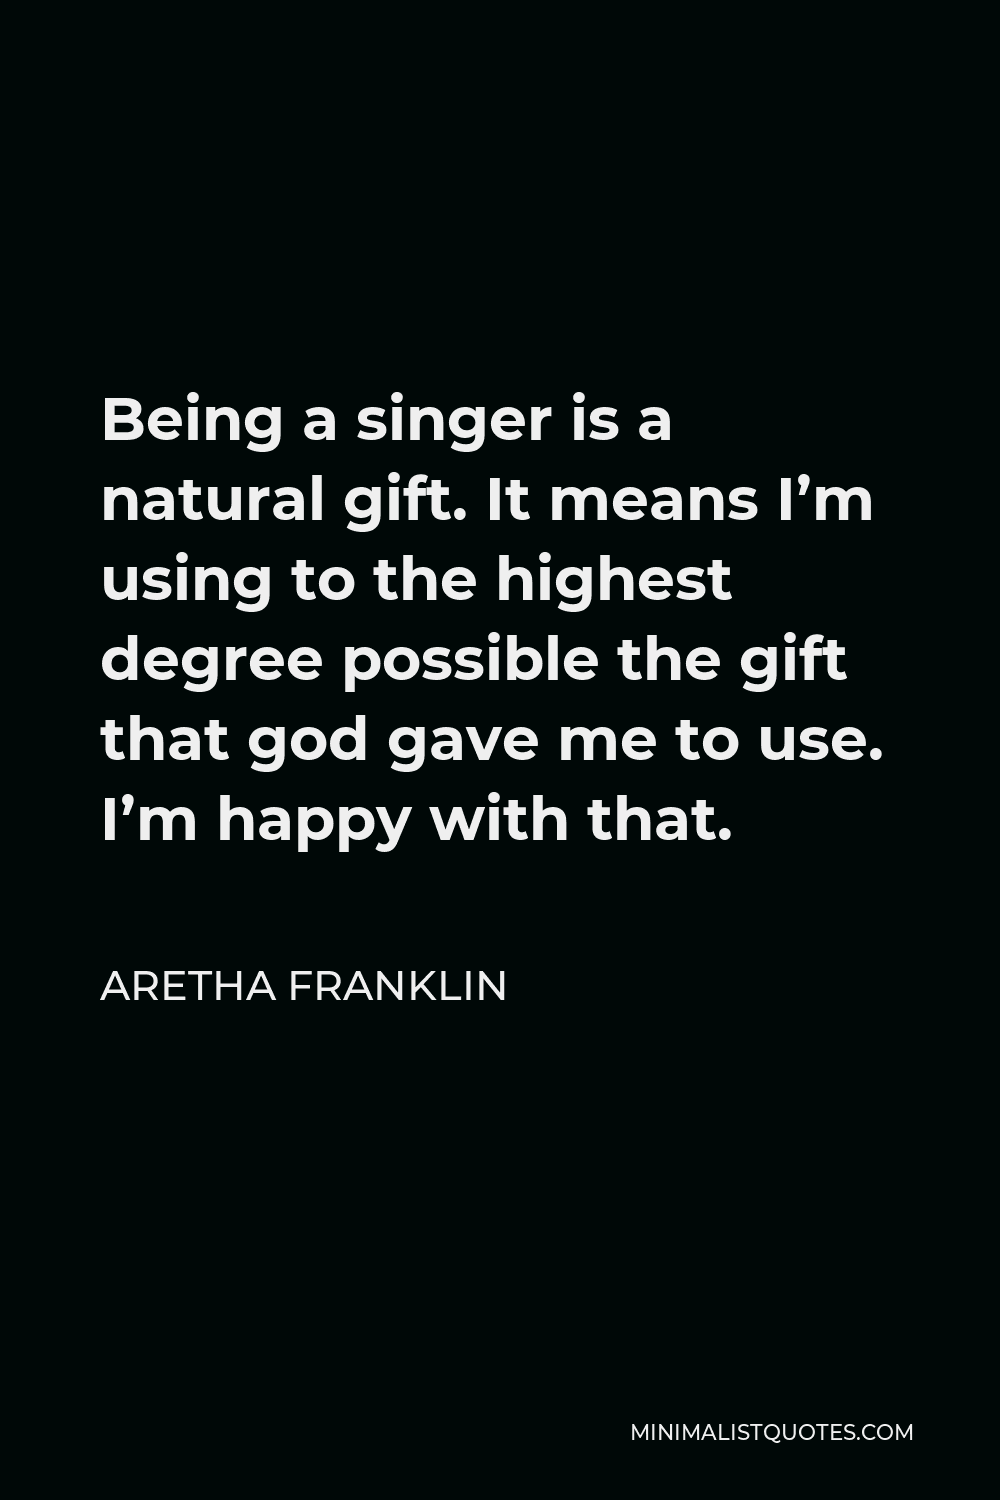 Aretha Franklin Quote - Being a singer is a natural gift. It means I'm using to the highest degree possible the gift that god gave me to use. I'm happy with that.